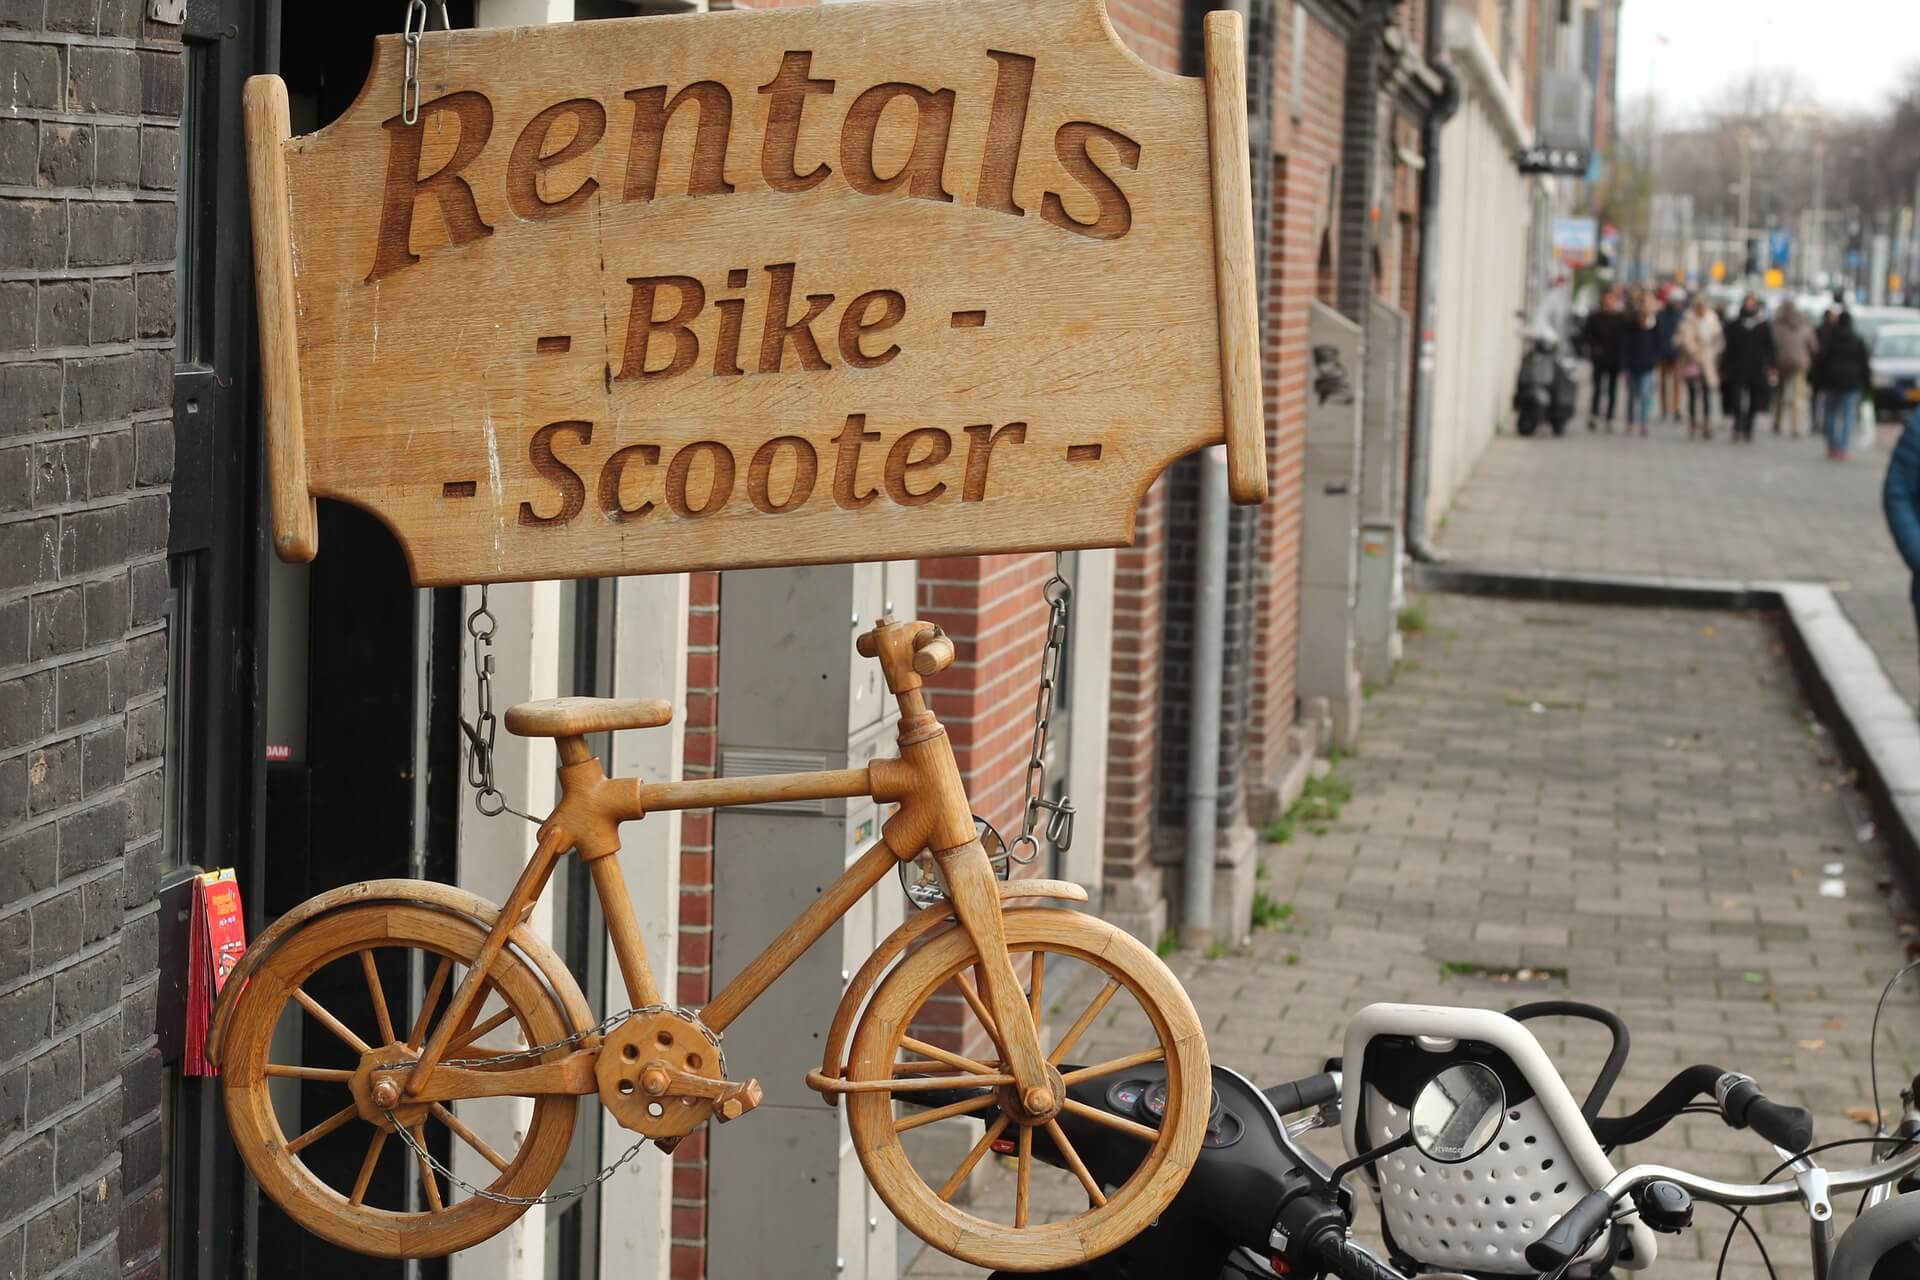 wooden storefront sign advertising bike and scooter rentals